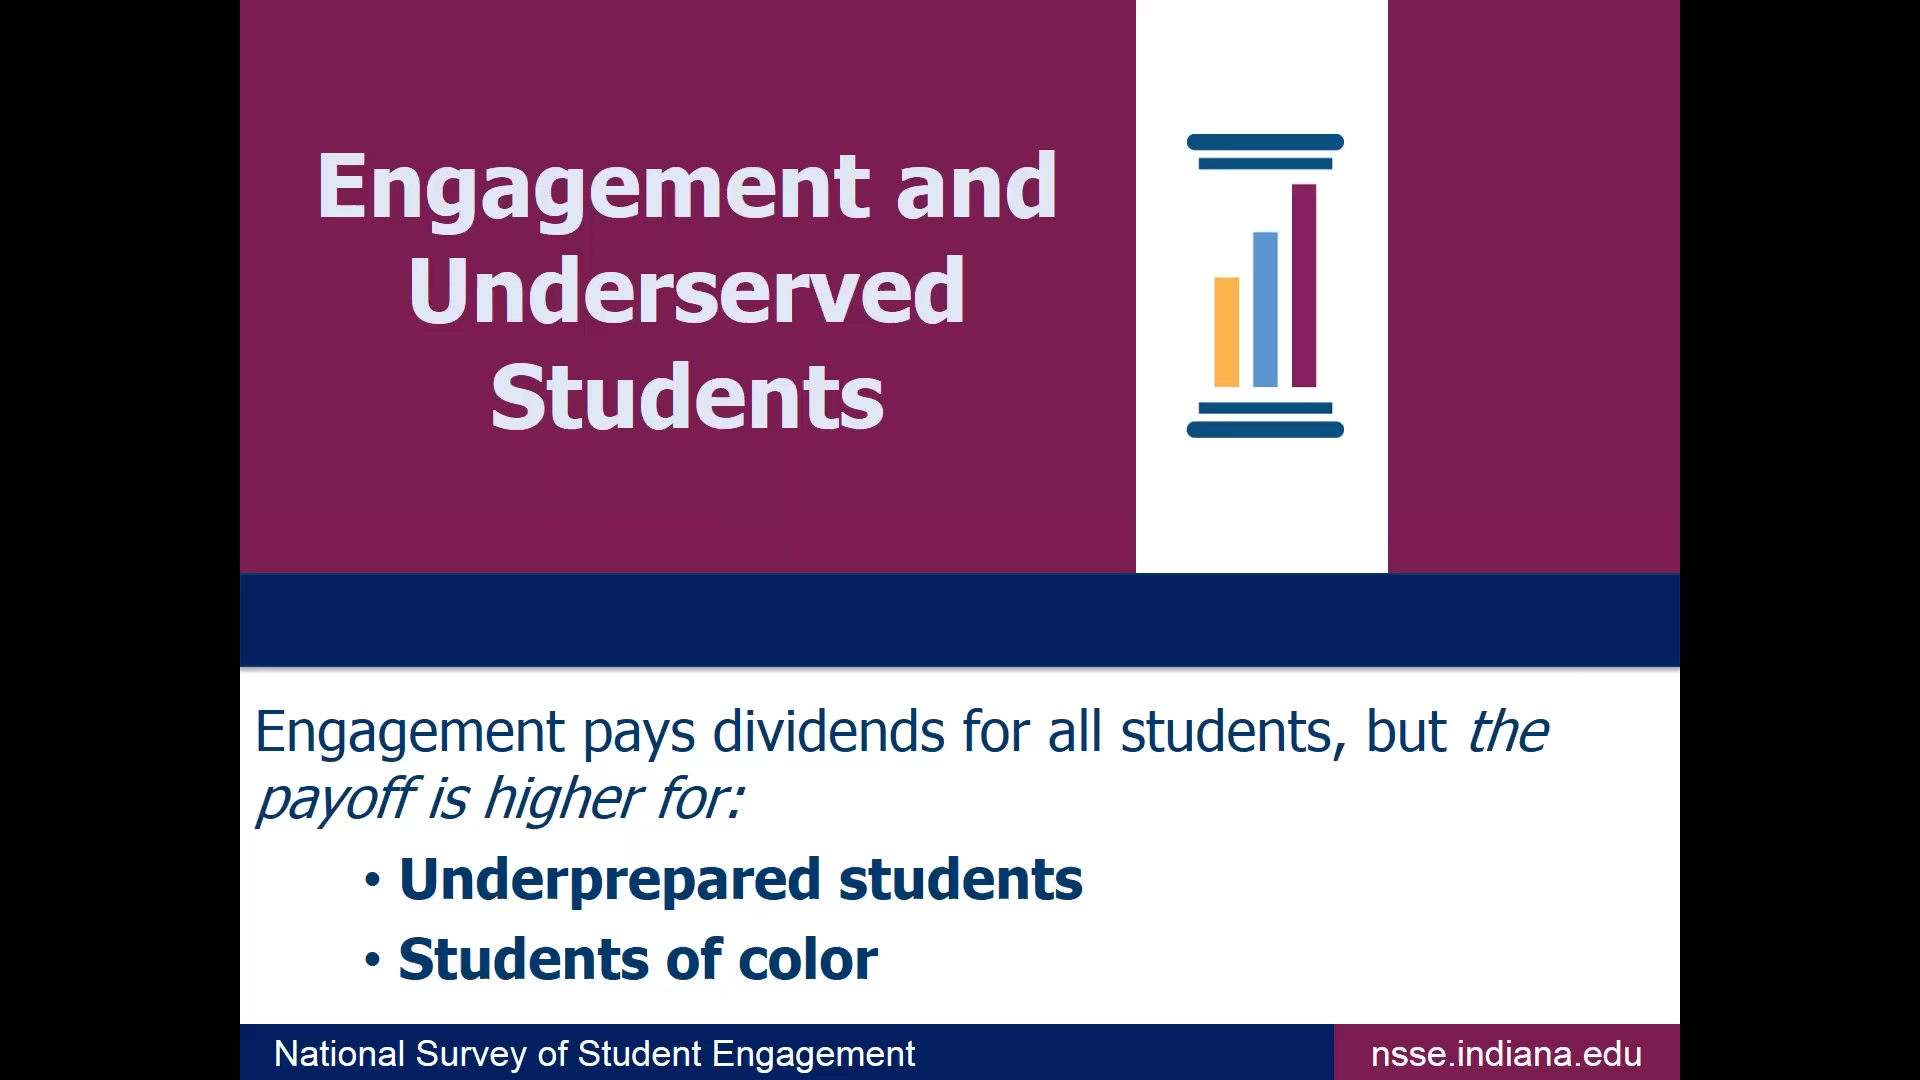 What Student Engagement Tells Us About Our Undergraduates